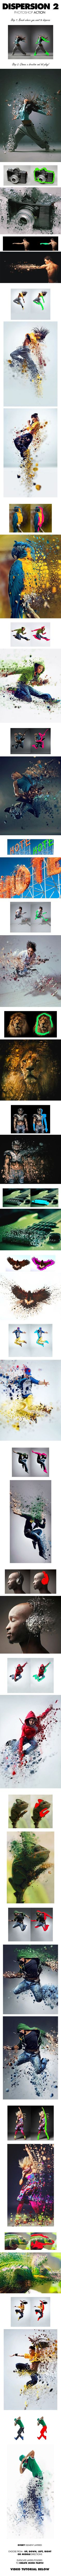 Dispersion 2 Photoshop Action - Photo Effects Actions #Inspiration